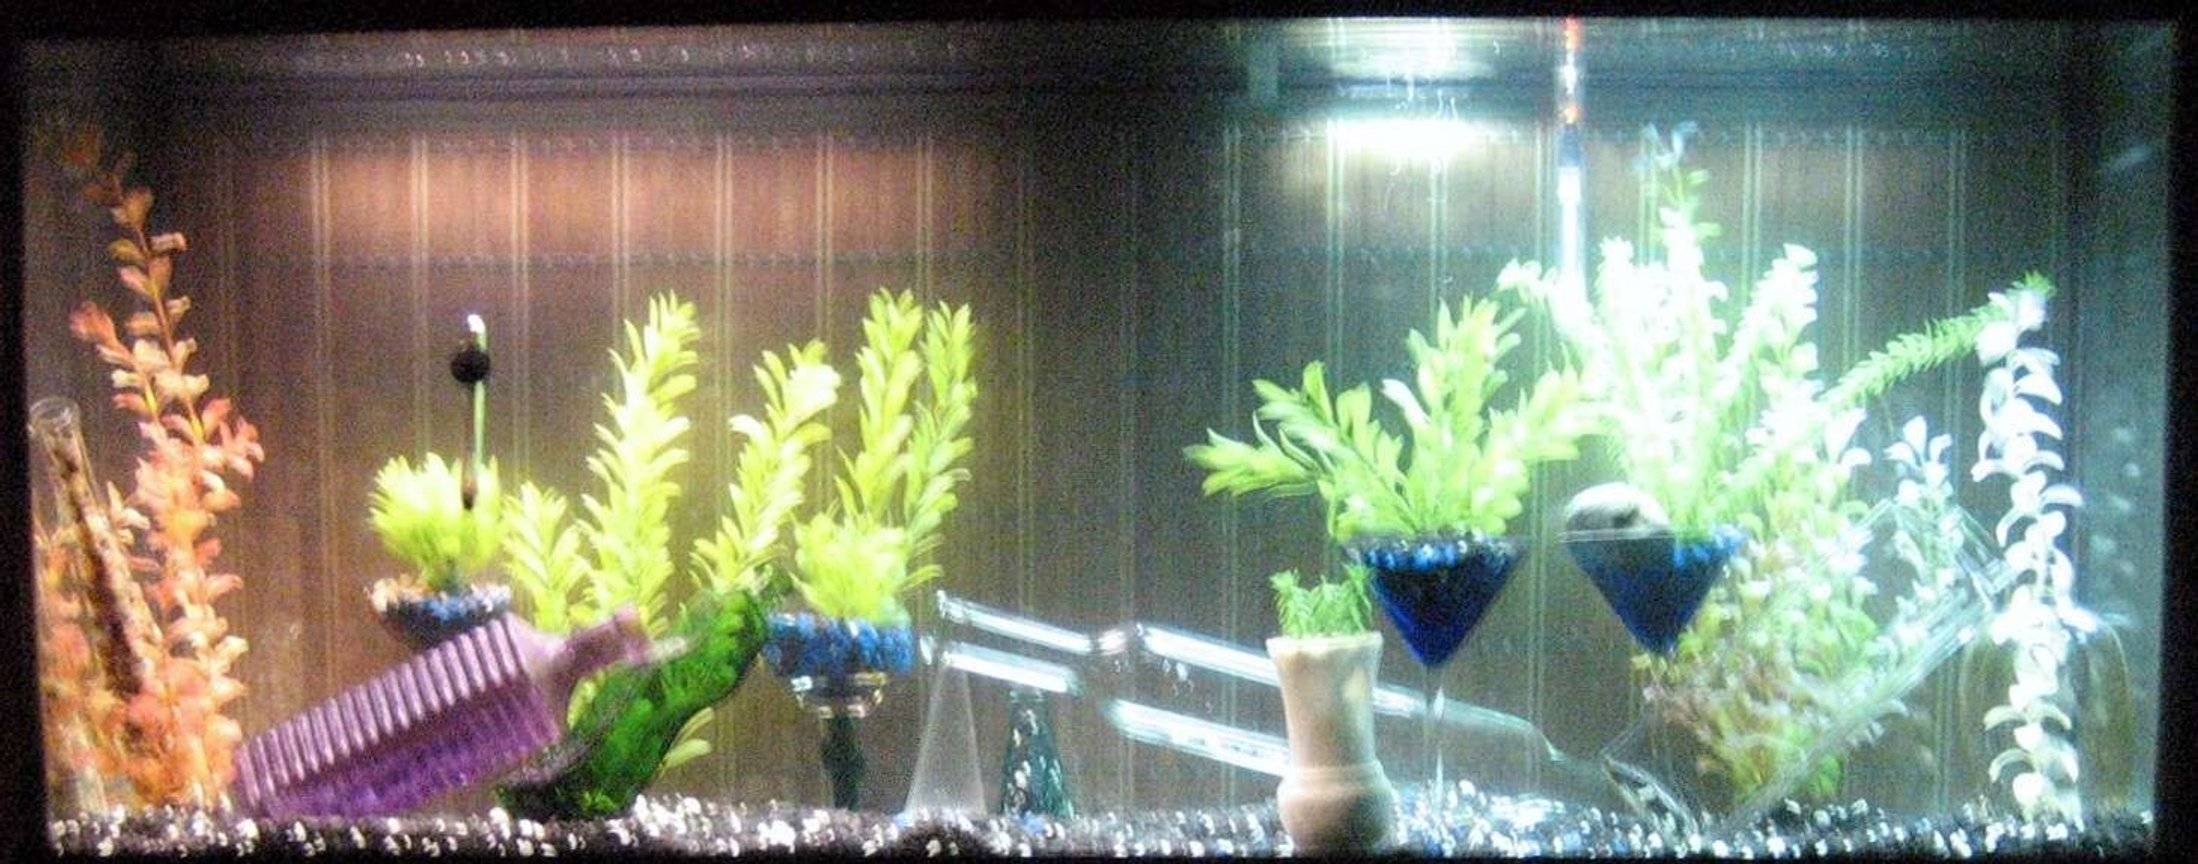 fish tank picture - before the fish